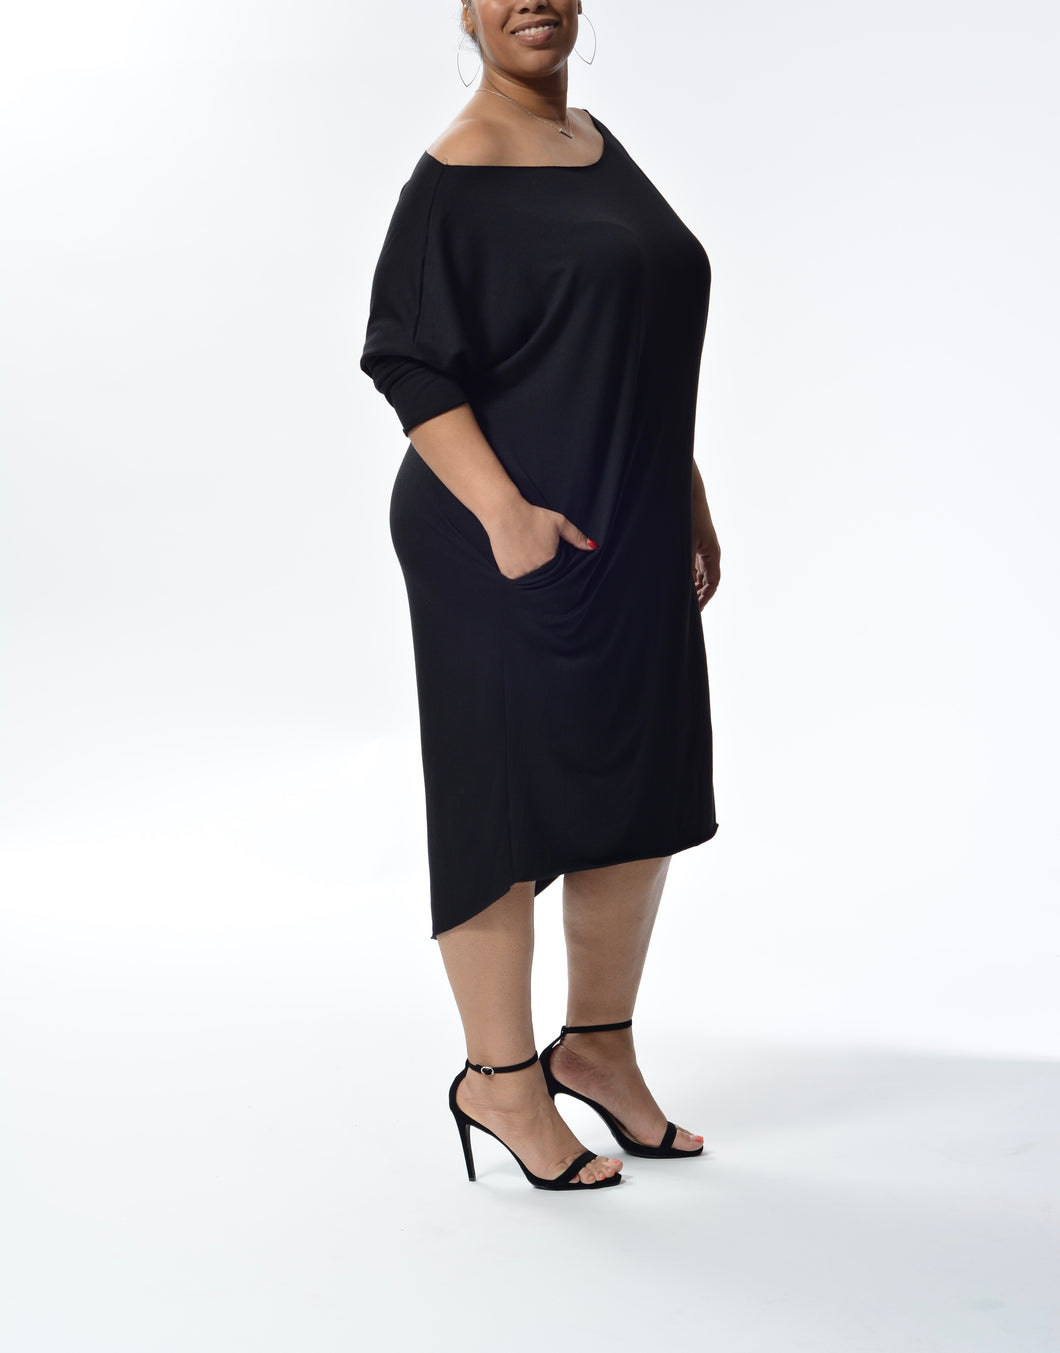 MJ - Dress - Black